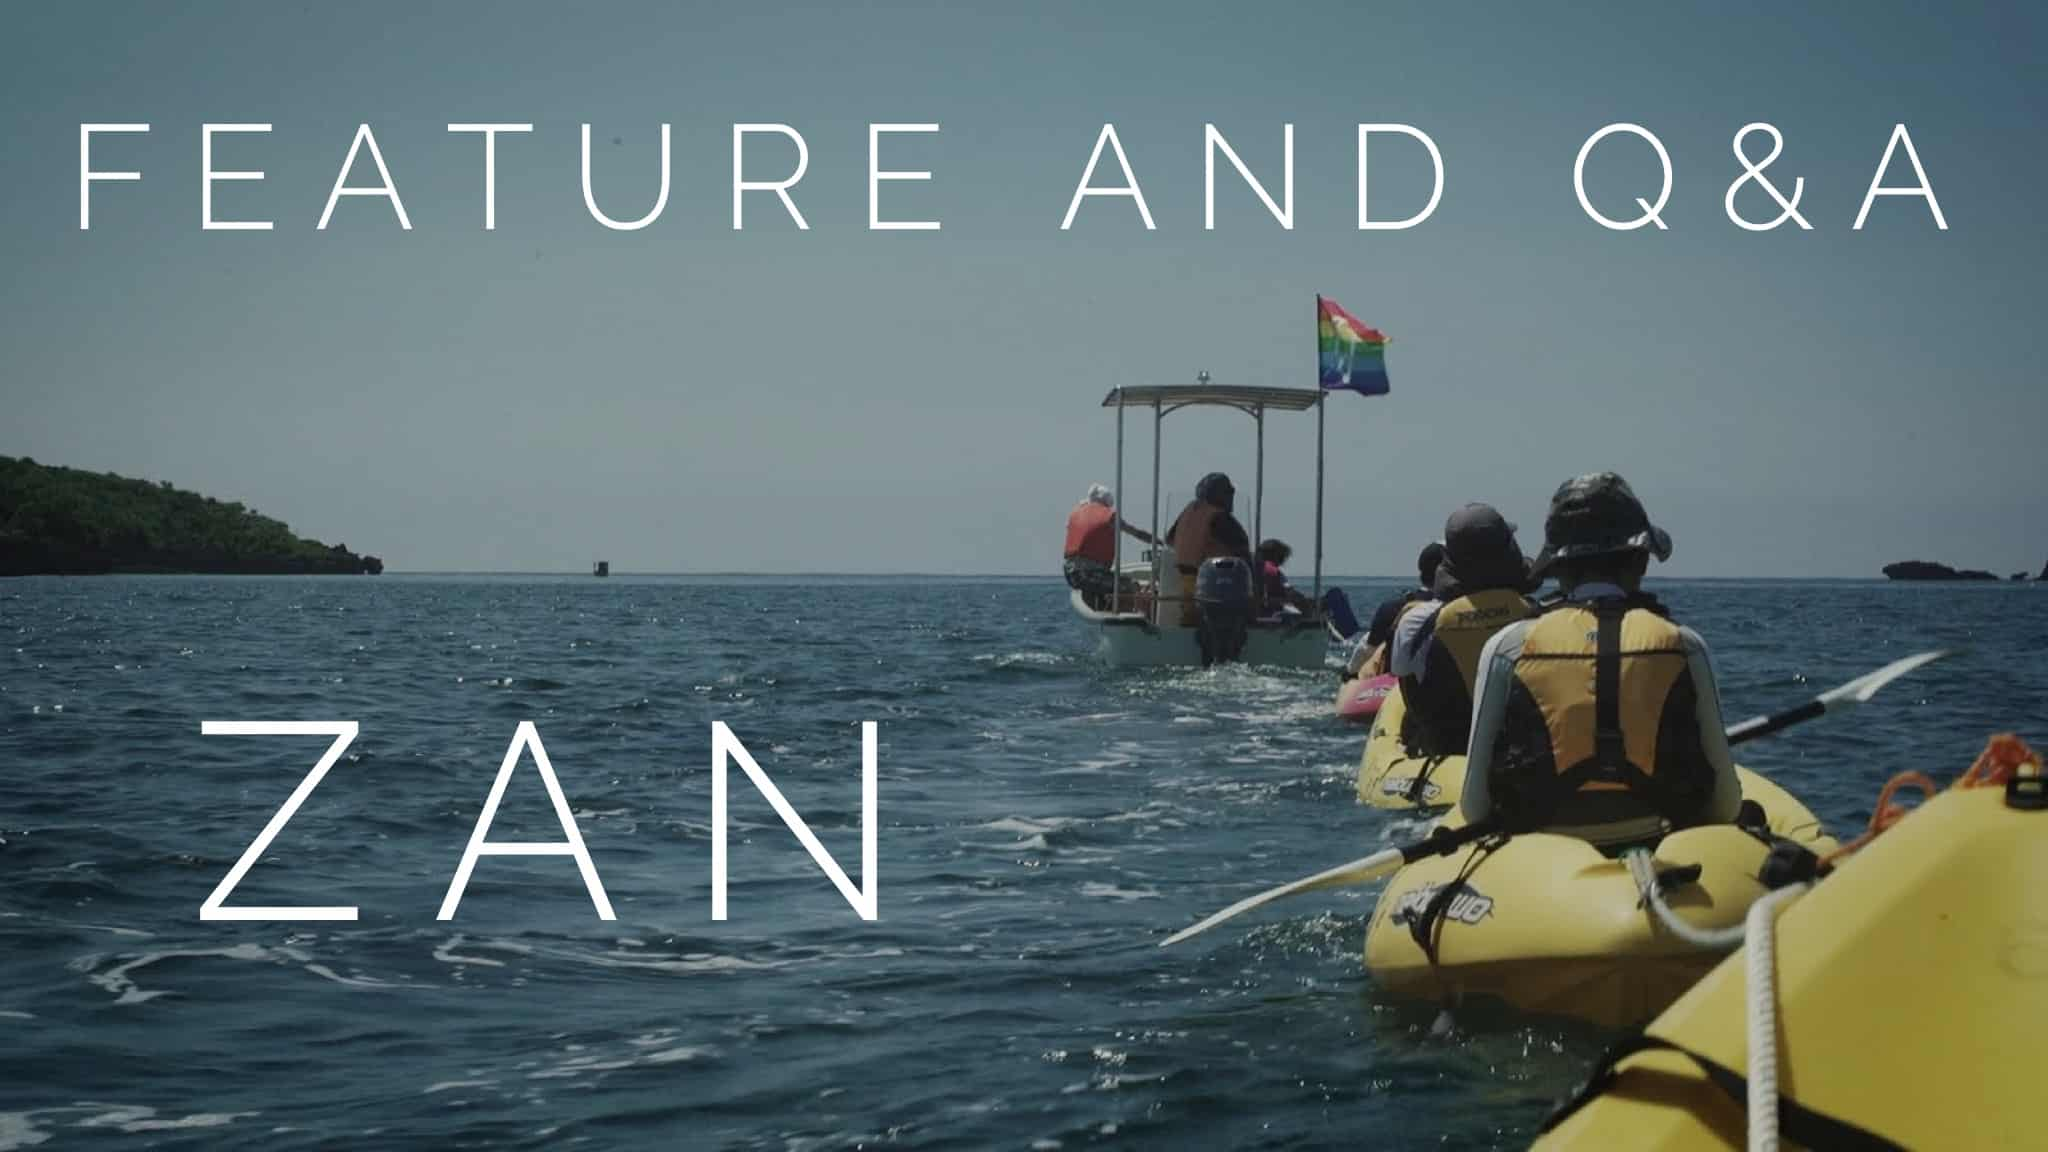 A still from the film 'Zan' showing kayaks in the ocean